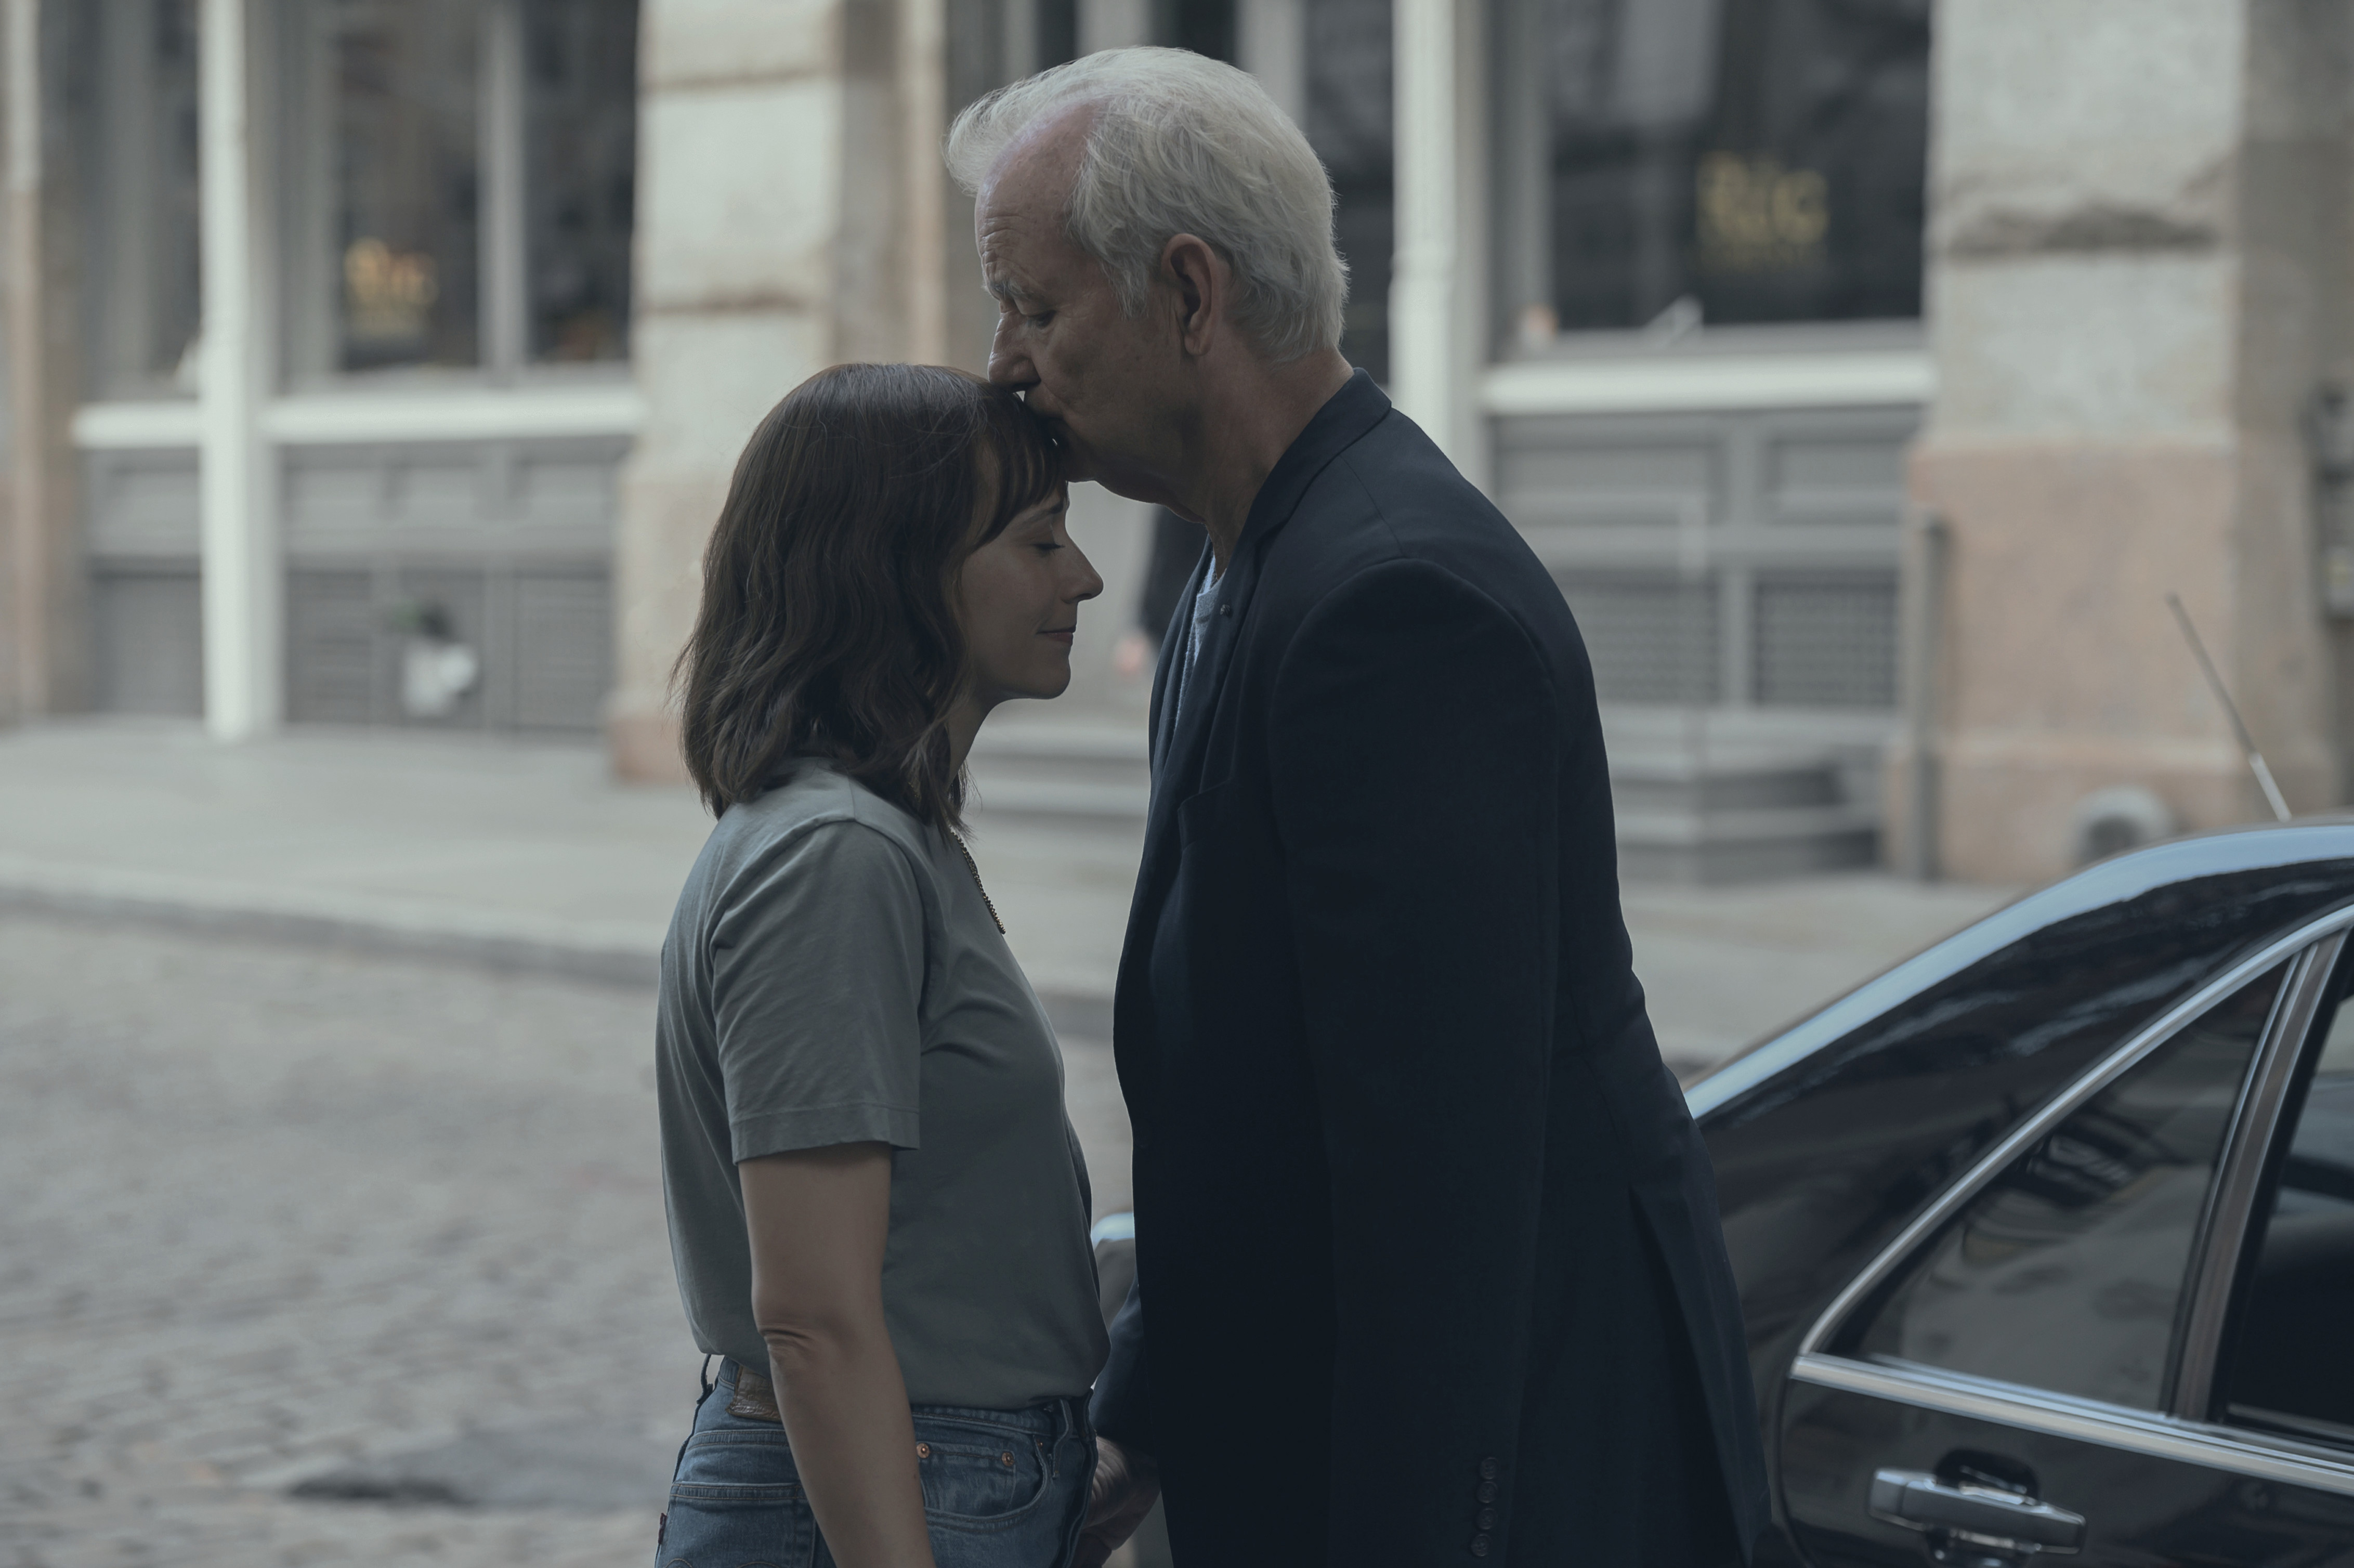 Rashida Jones and Bill Murray play daughter and father in 'On the Rocks'